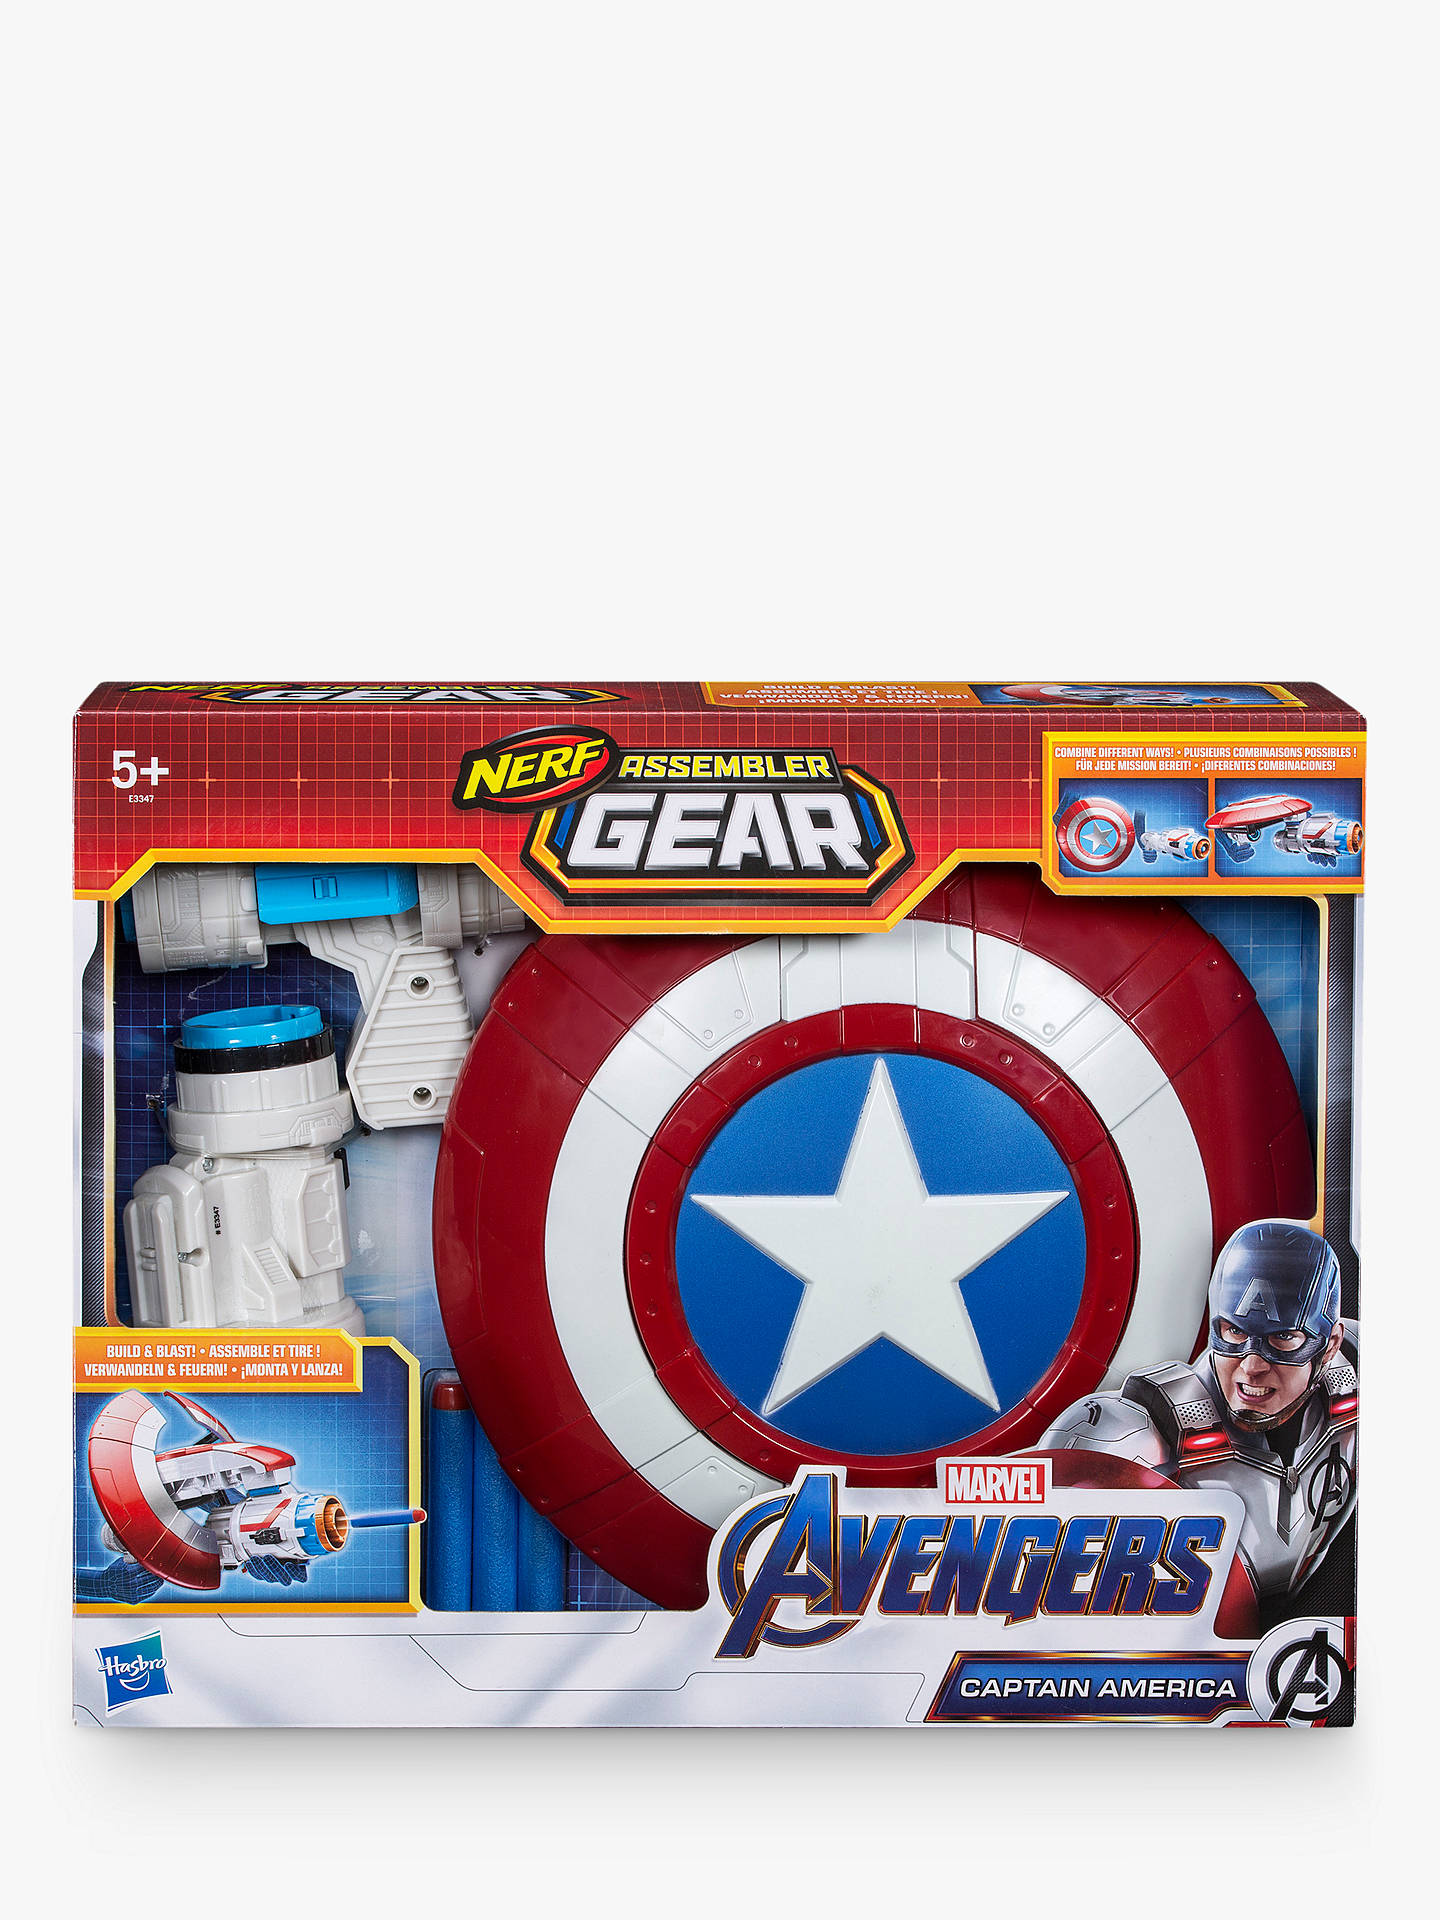 eb6e6709e3 Buy Marvel Avengers: Endgame Nerf Captain America Assembler Gear Online at  johnlewis.com ...